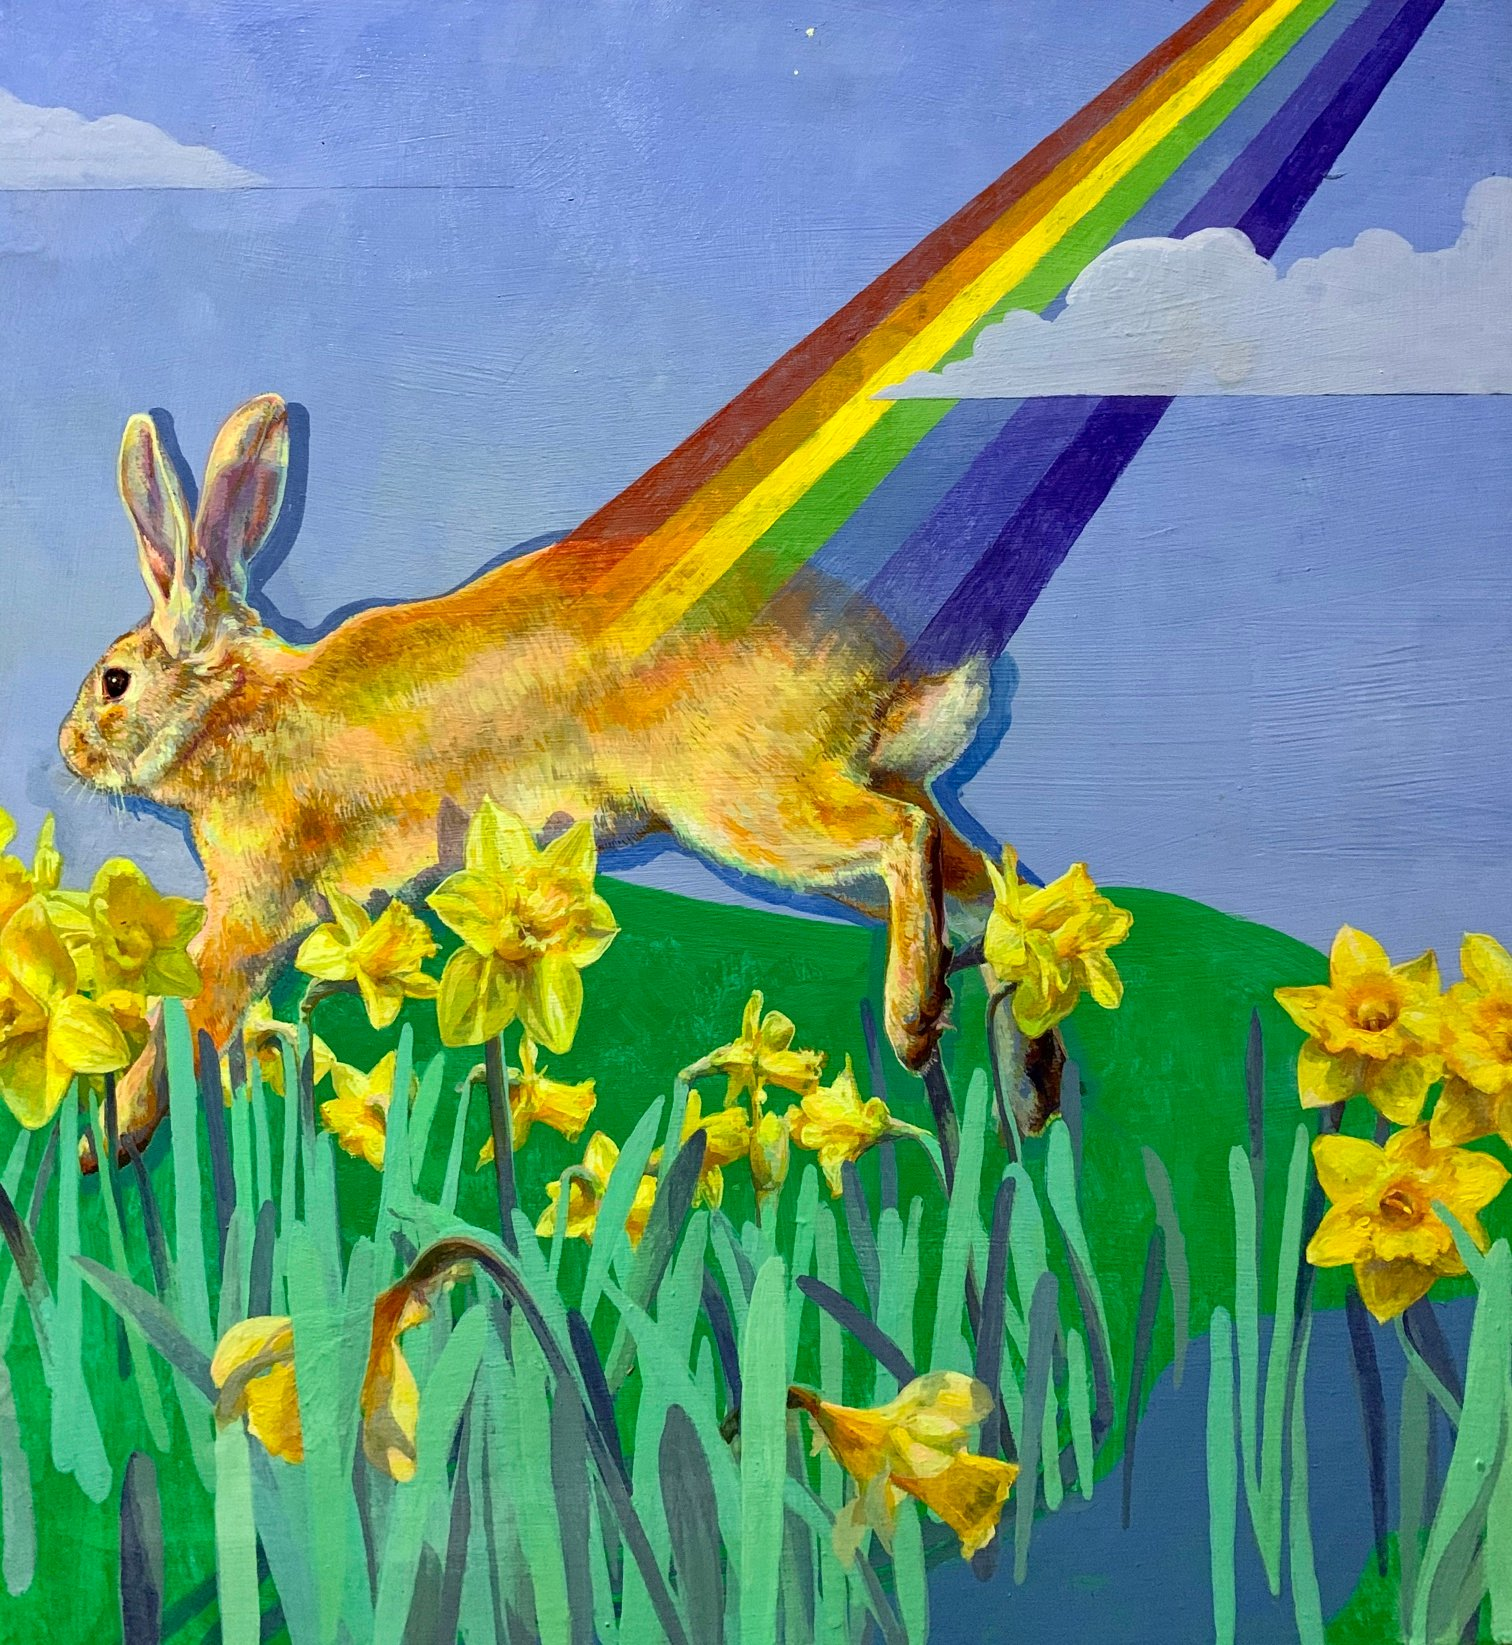 Across a field of daffodils, against a bright blue sky, a hare bounds.   From its haunches a rainbow of refracted light juts up and out towards the top right corner of the painting.